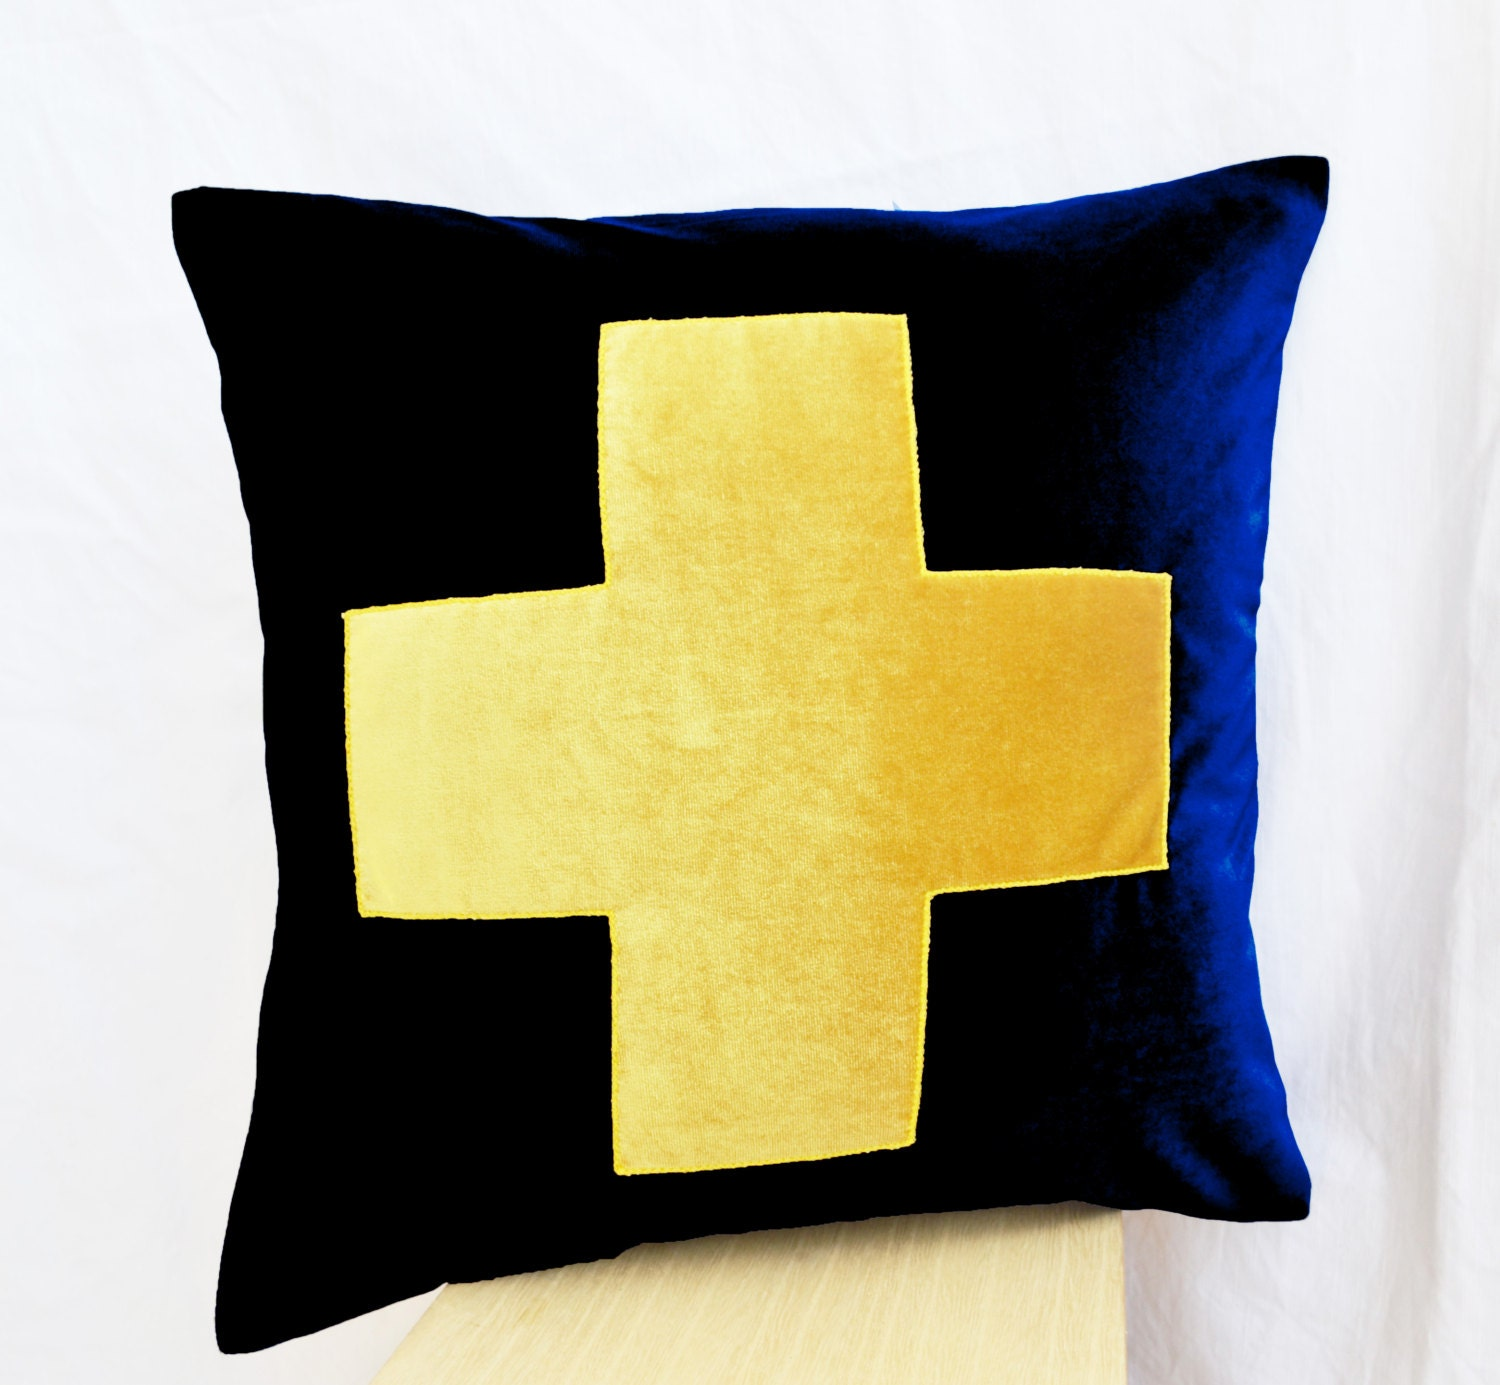 Blue and yellow pillows